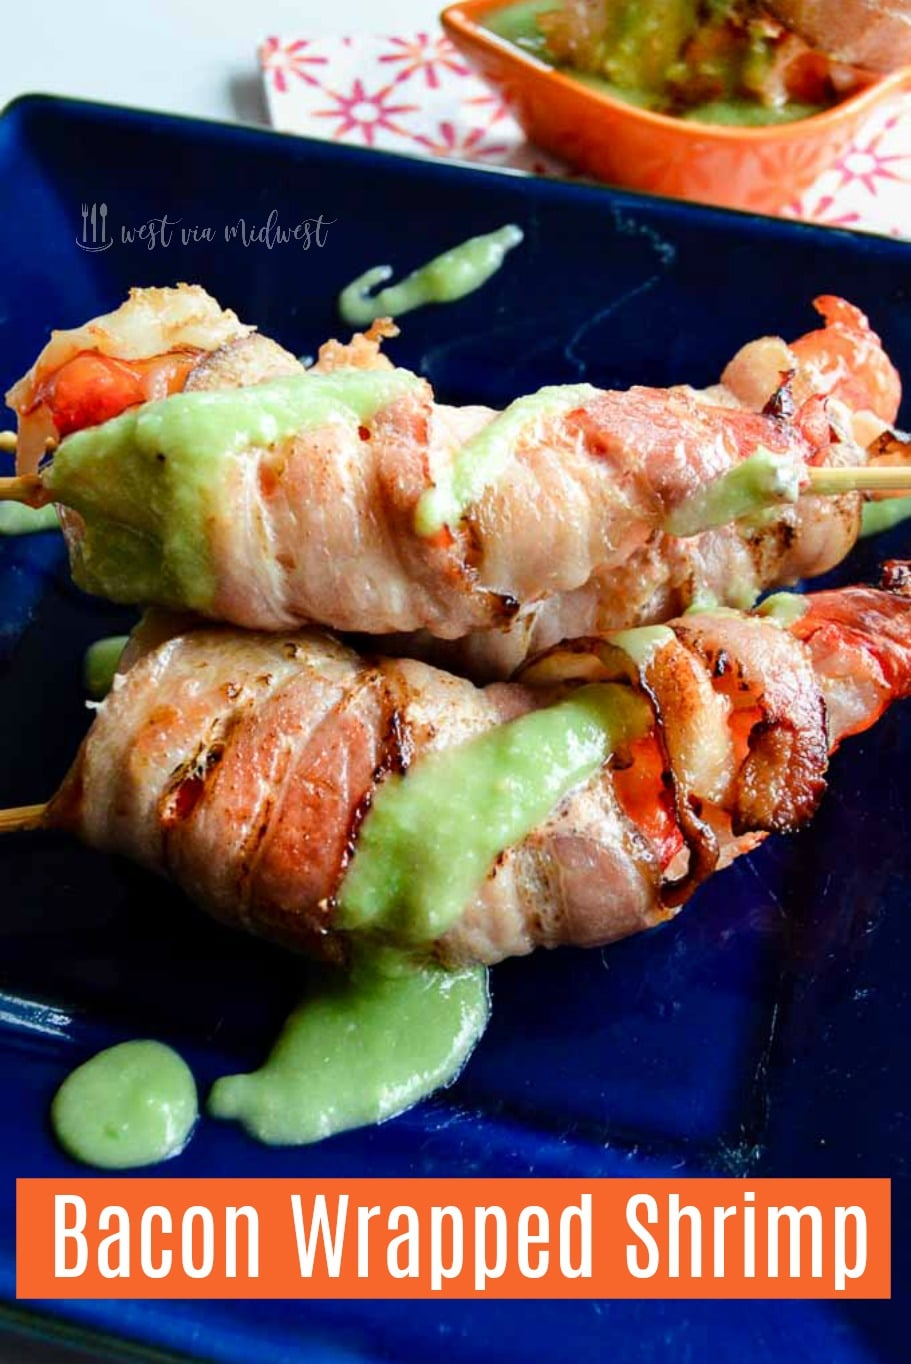 skewers of shrimp wrapped in bacon on a plate.